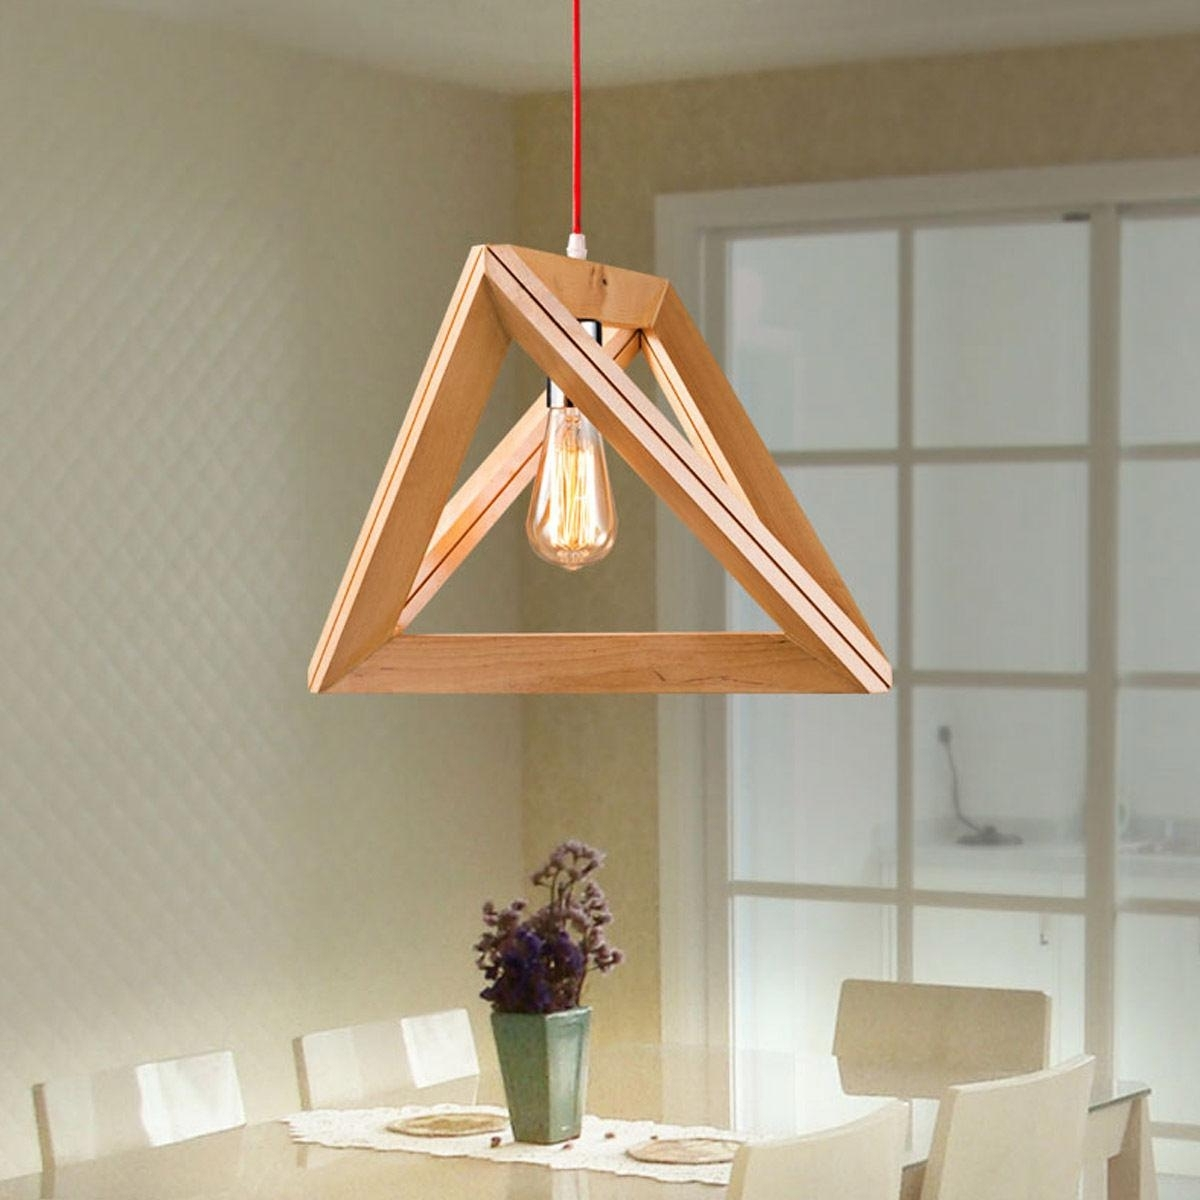 Preferred New Modern Art Wooden Ceiling Light Pendant Lamp Lighting Light Wood Pertaining To Wooden Chandeliers (View 6 of 20)